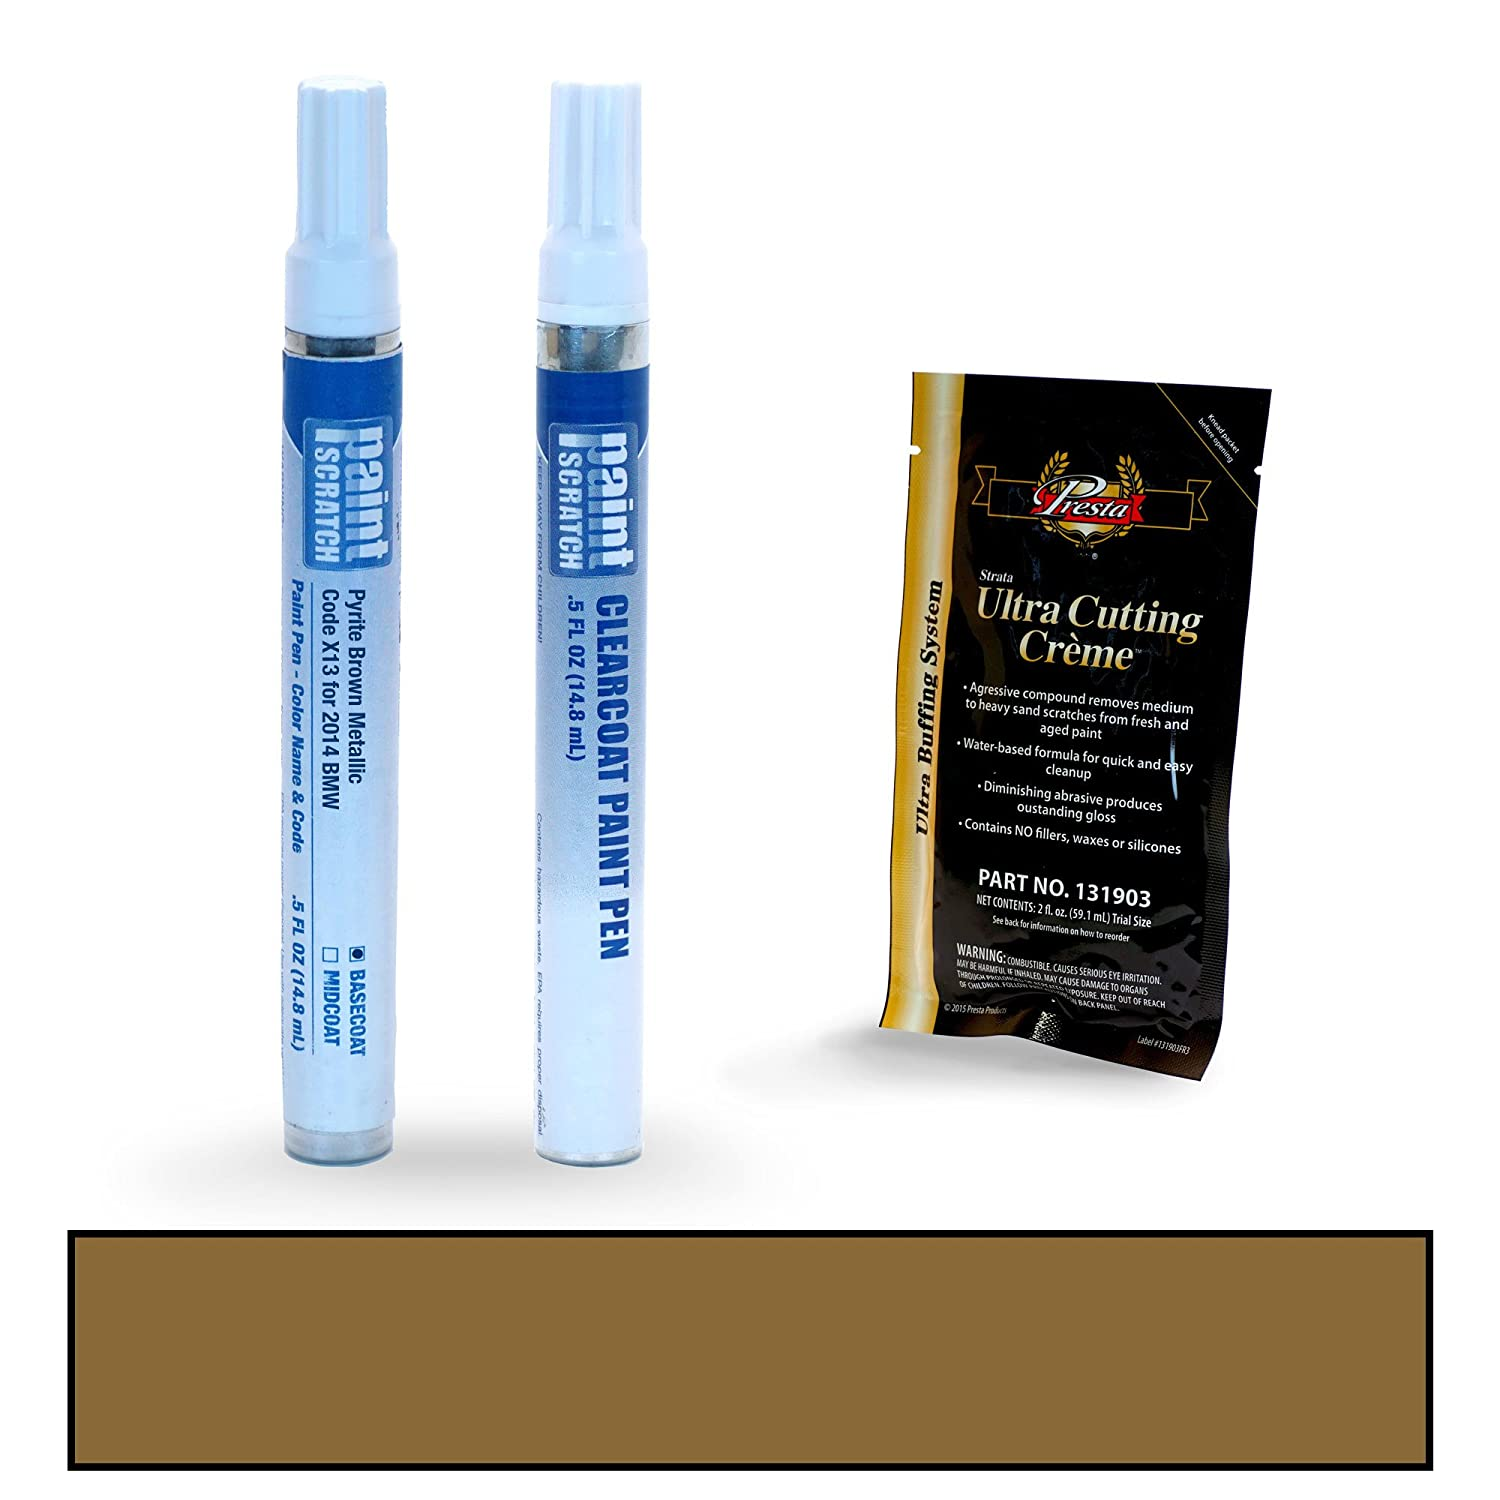 PAINTSCRATCH Monte Carlo Blue Metallic B05 for 2014 BMW M5 - Touch Up Paint Pen Kit - Original Factory OEM Automotive Paint - Color Match Guaranteed